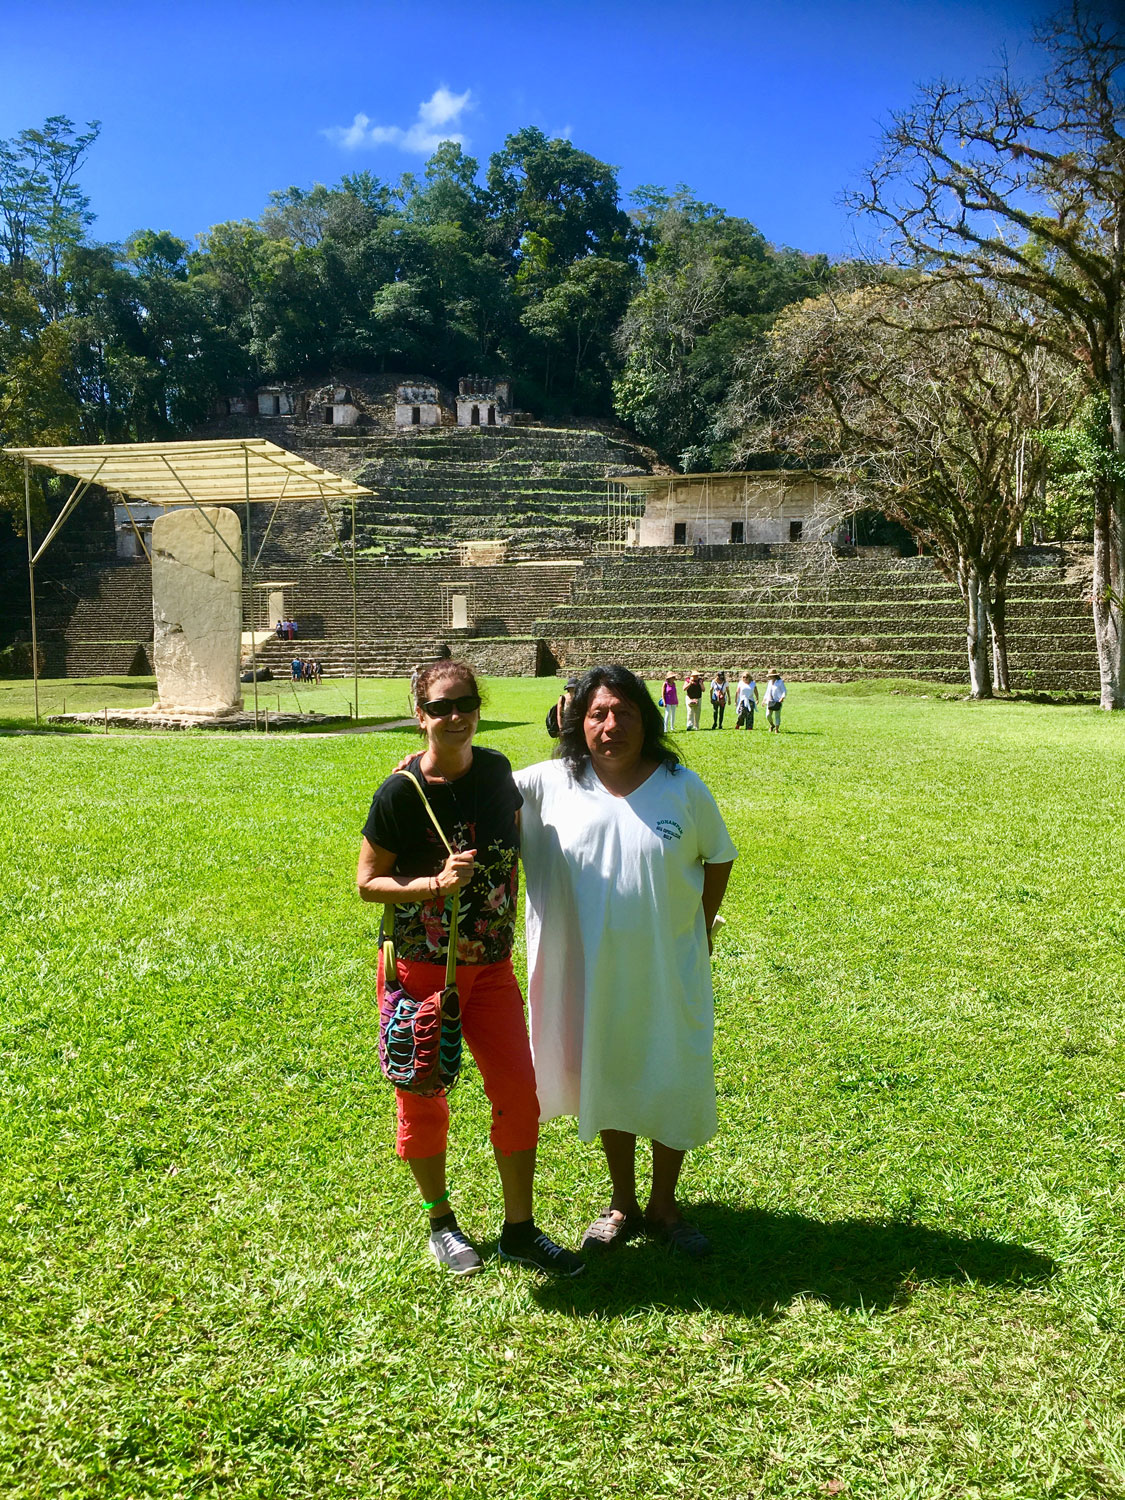 With Billy, the Bonampak guide, in 2018.